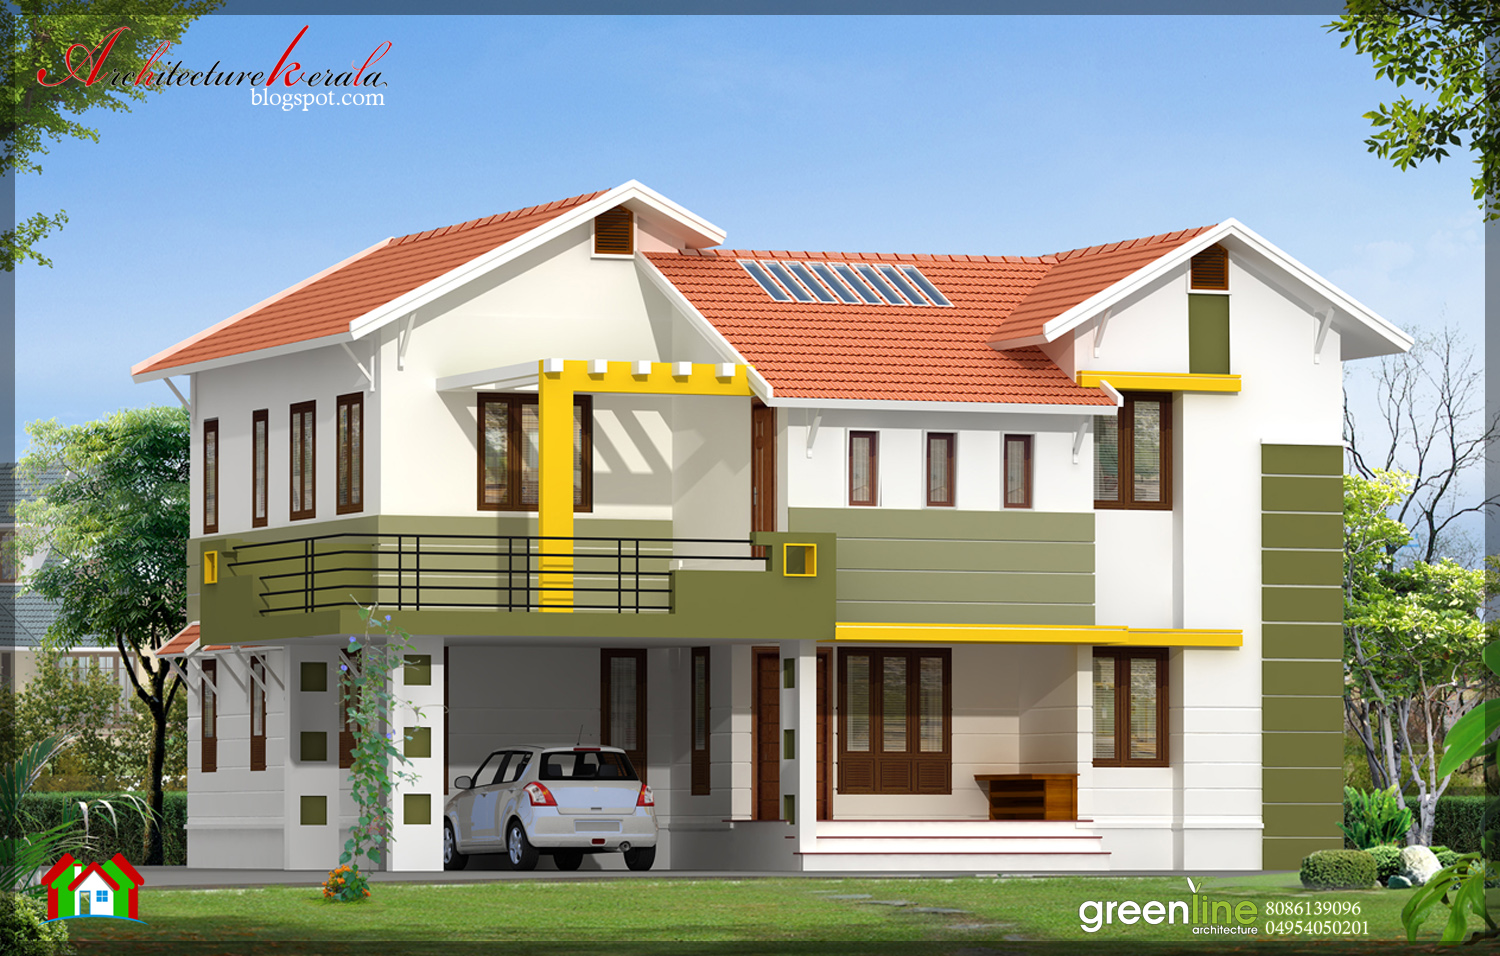 Architecture kerala 4 bhk contemporary style indian home for Home architecture design kerala